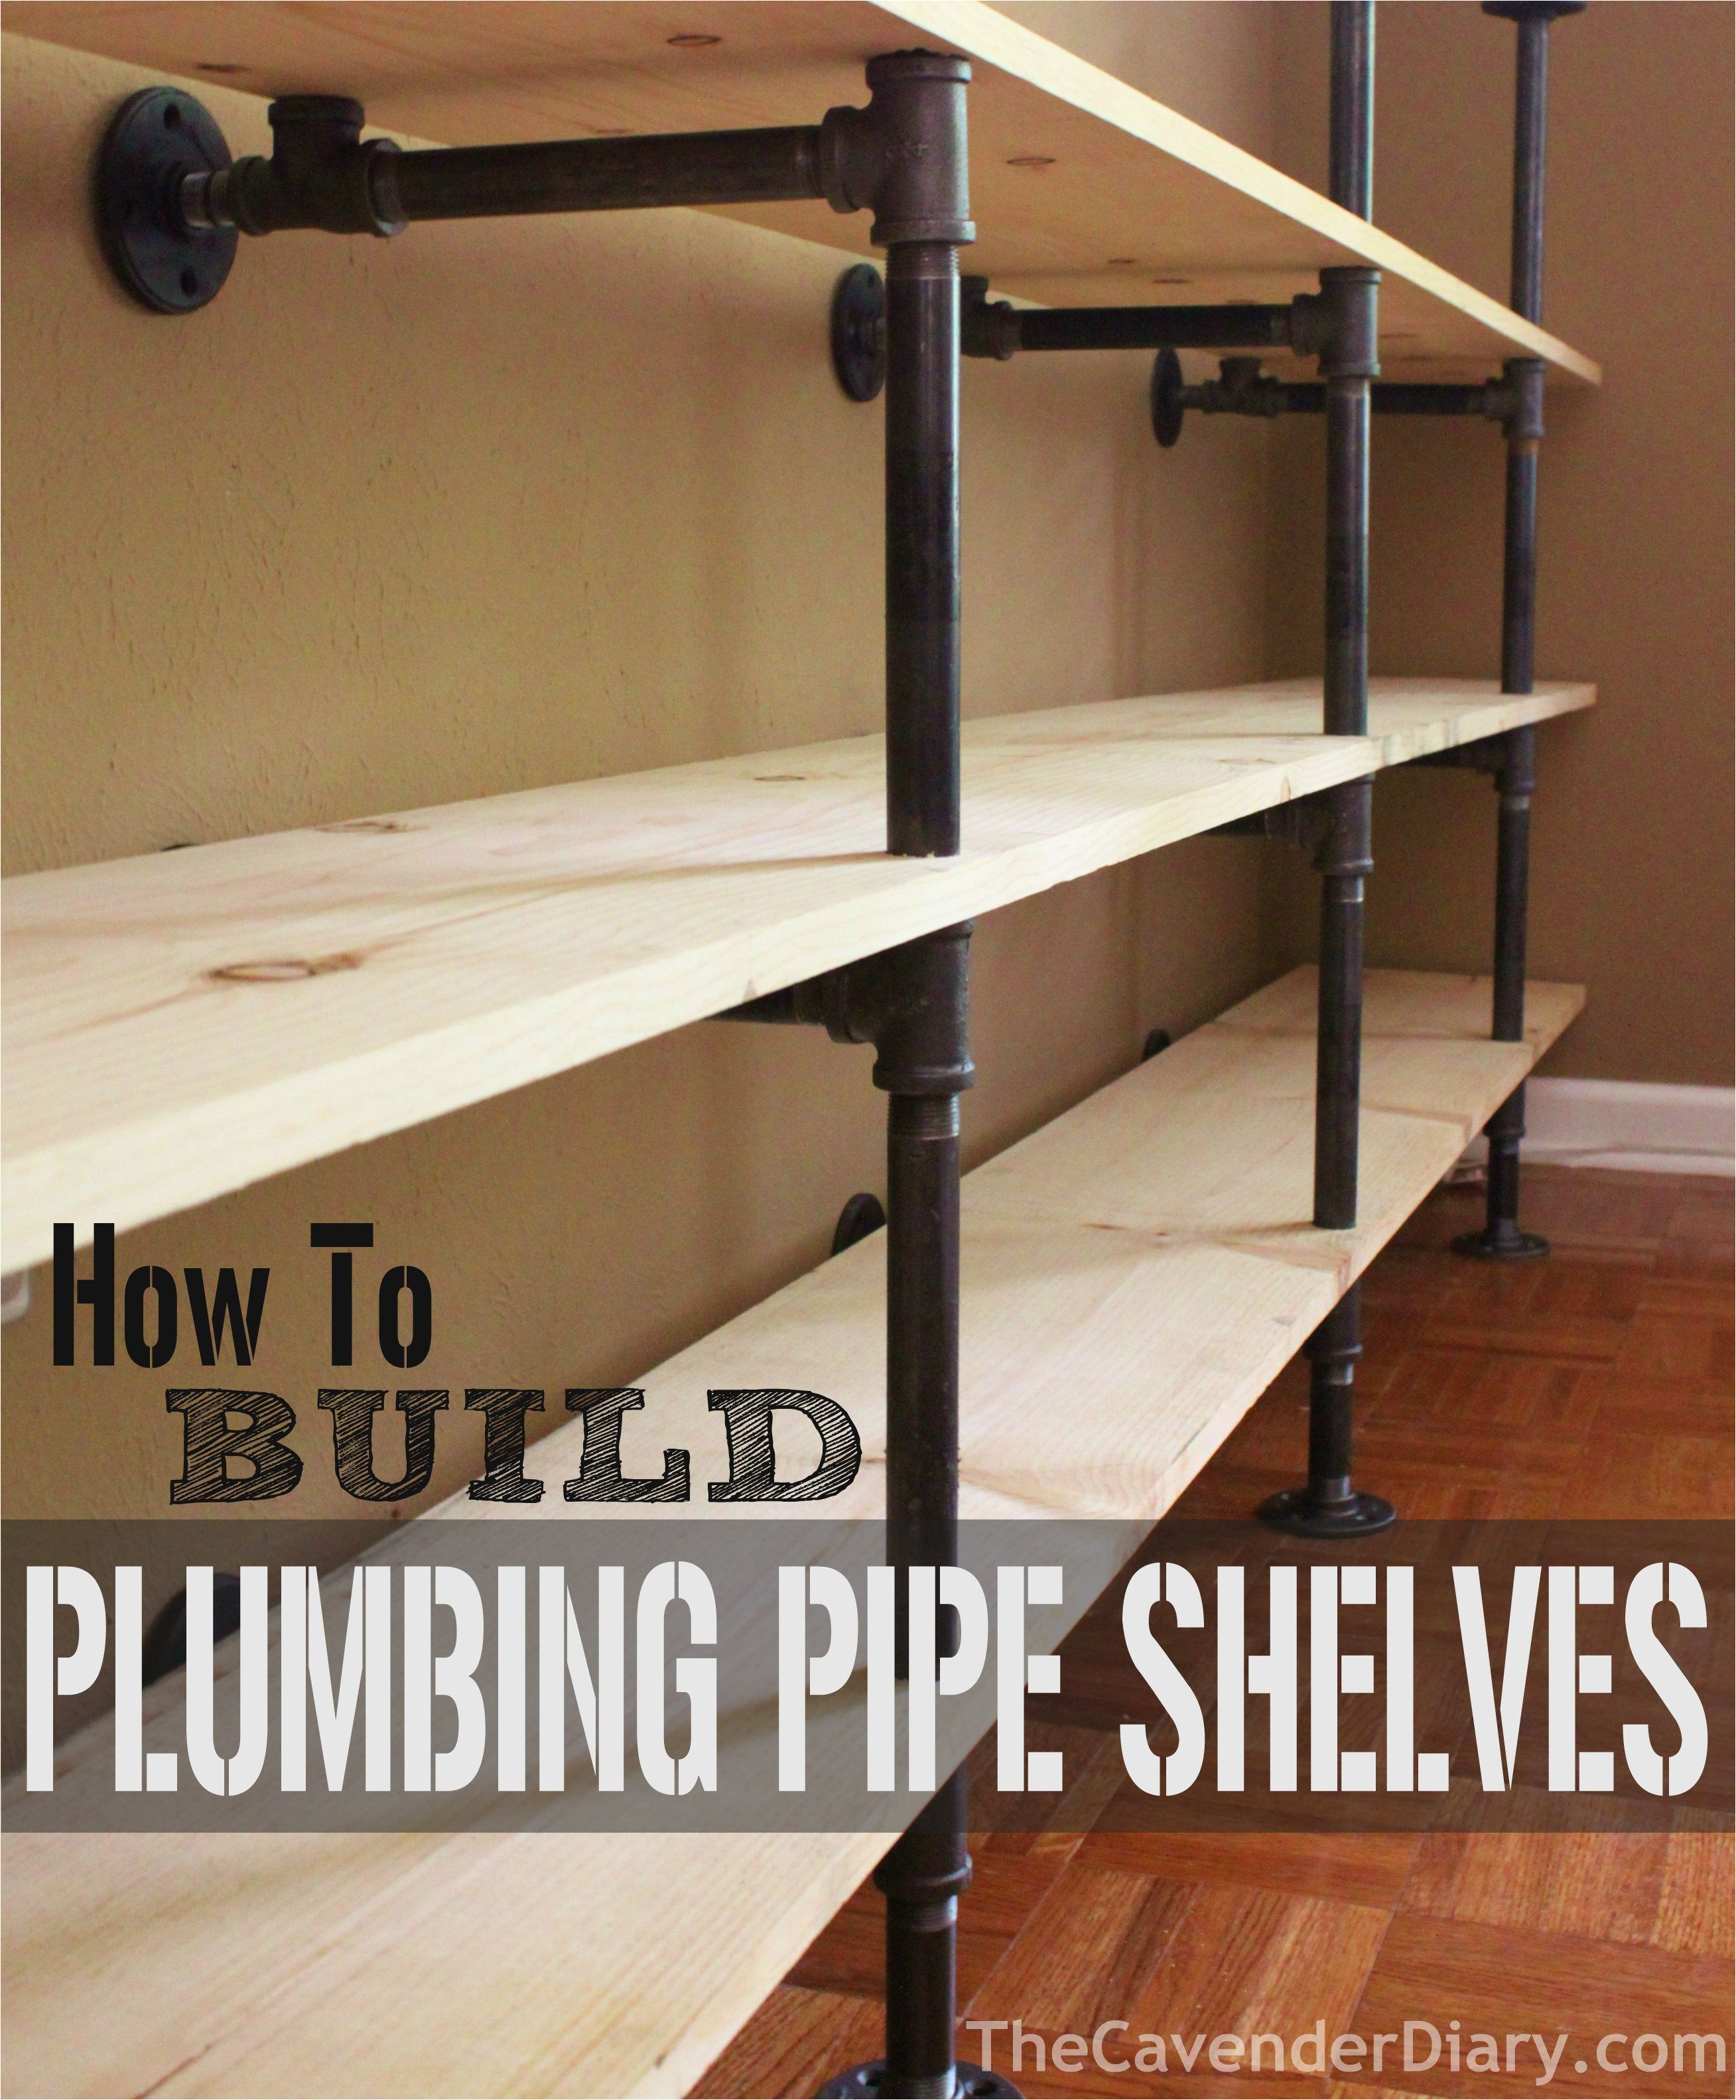 how to build plumbing pipe shelves cavender diary iron pipe shelves wood and